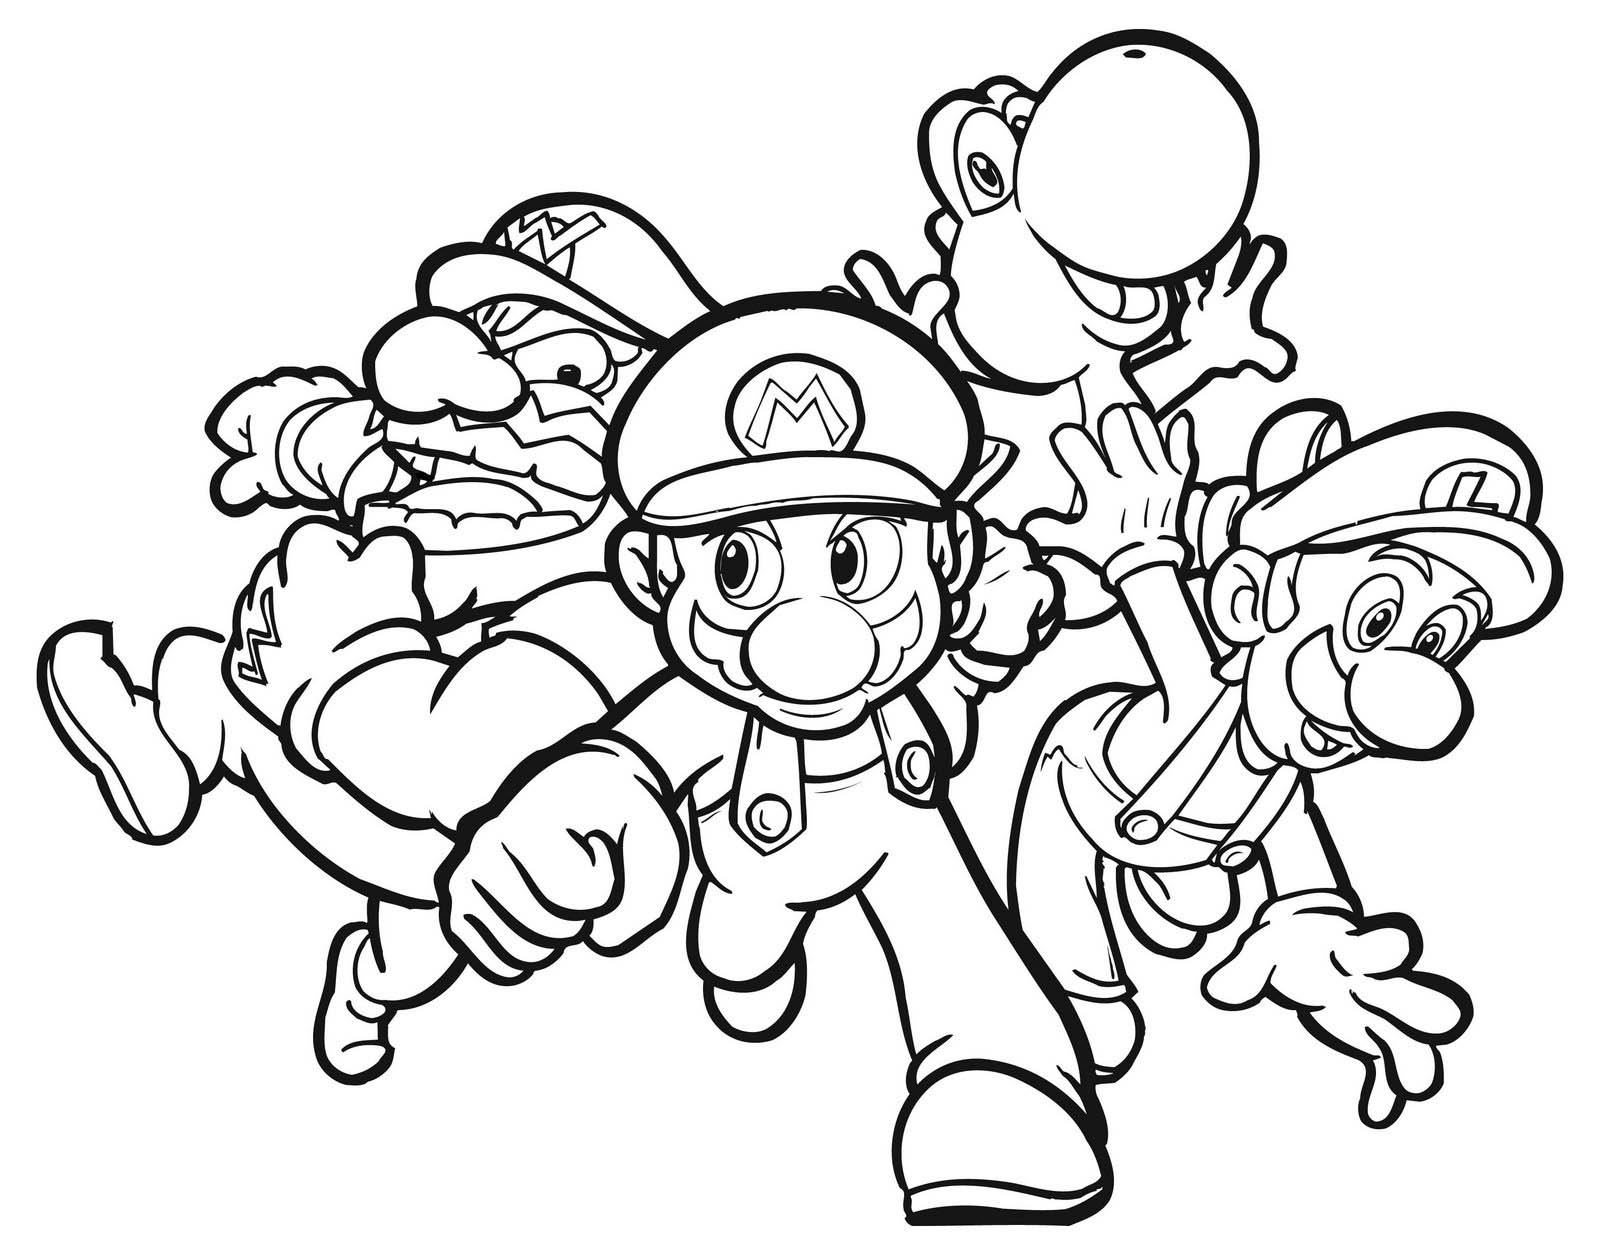 1600x1255 Awesome Mario Kart Coloring Pages Best For Kids New Auto Market